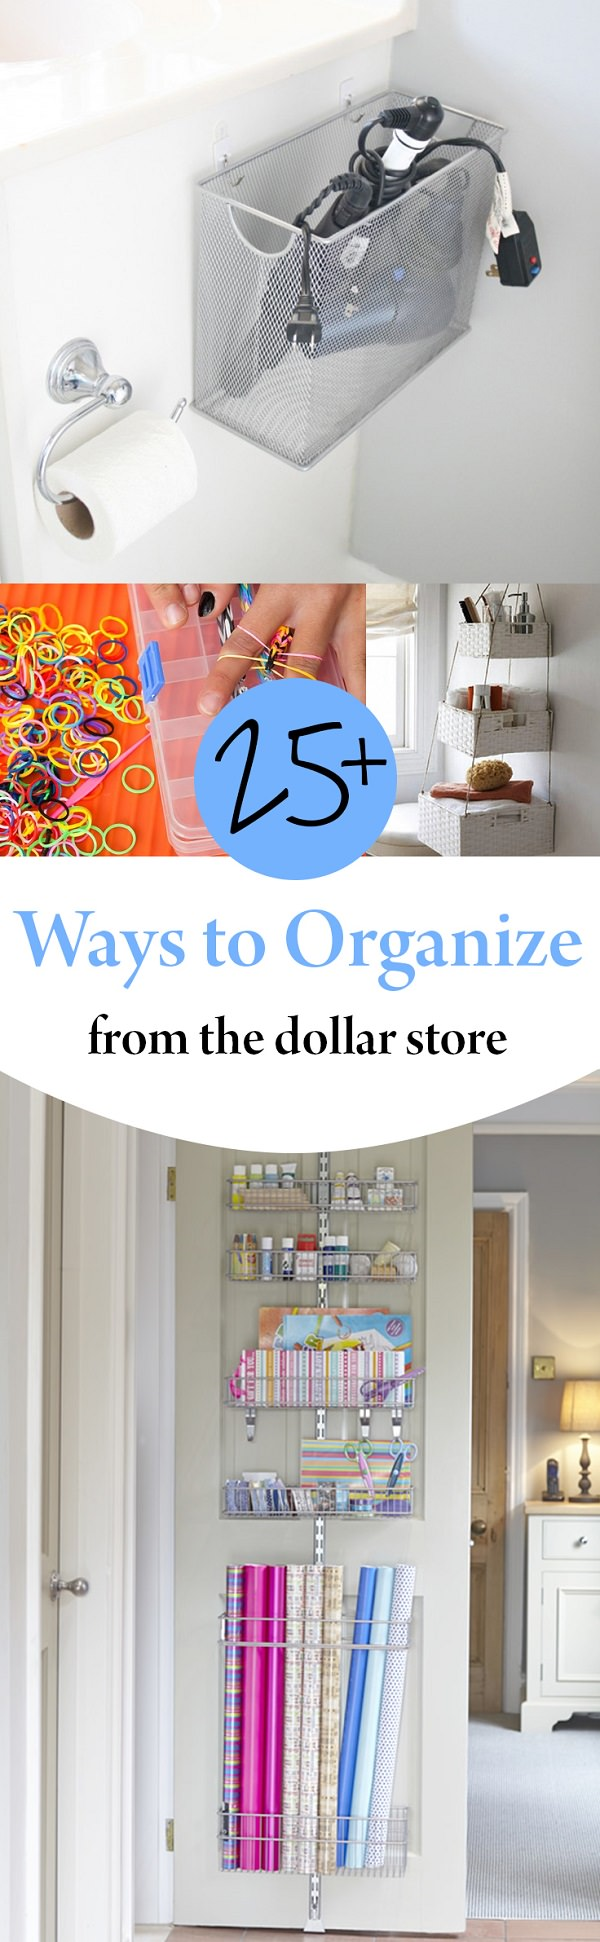 Here are some unique and clever ways to organize from the dollar store.